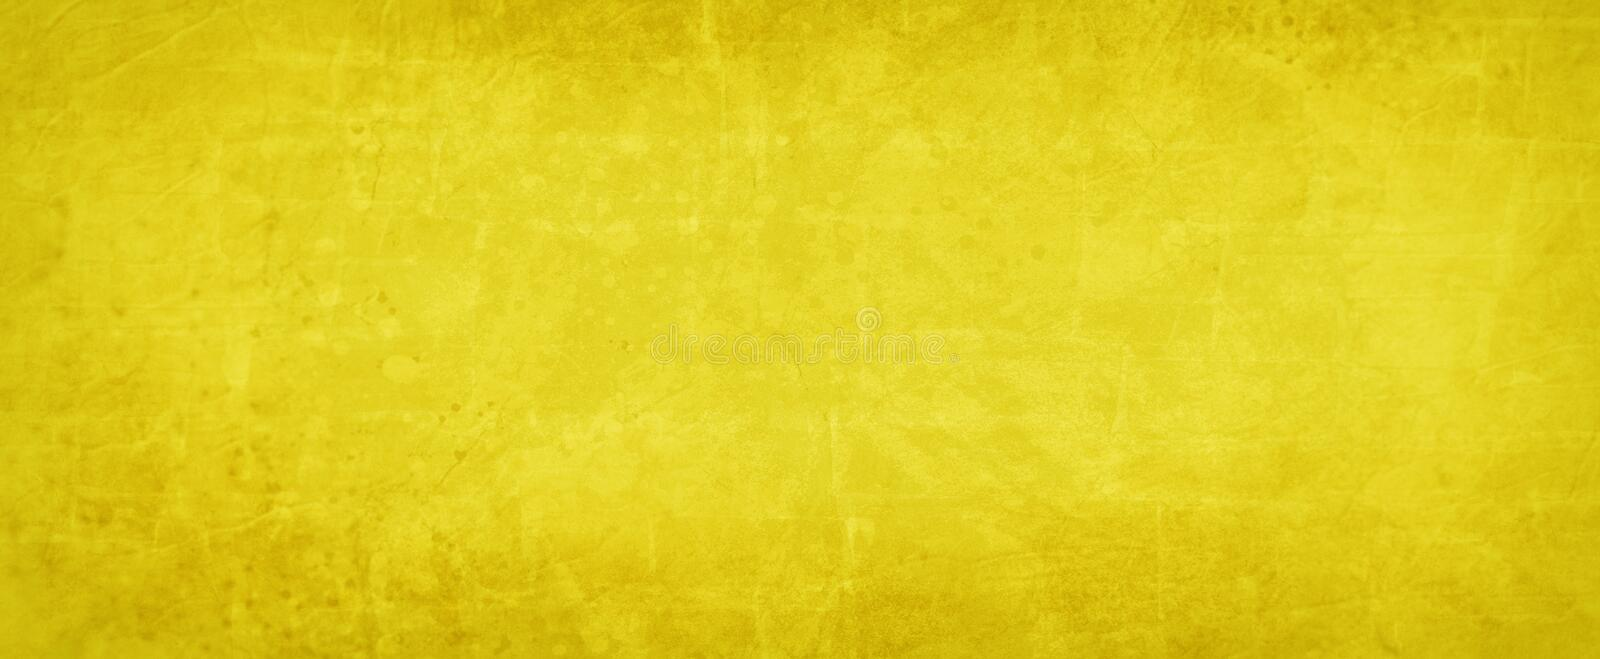 Yellow background texture, bright gold color with abstract vintage paint spatter texture with rock vector illustration